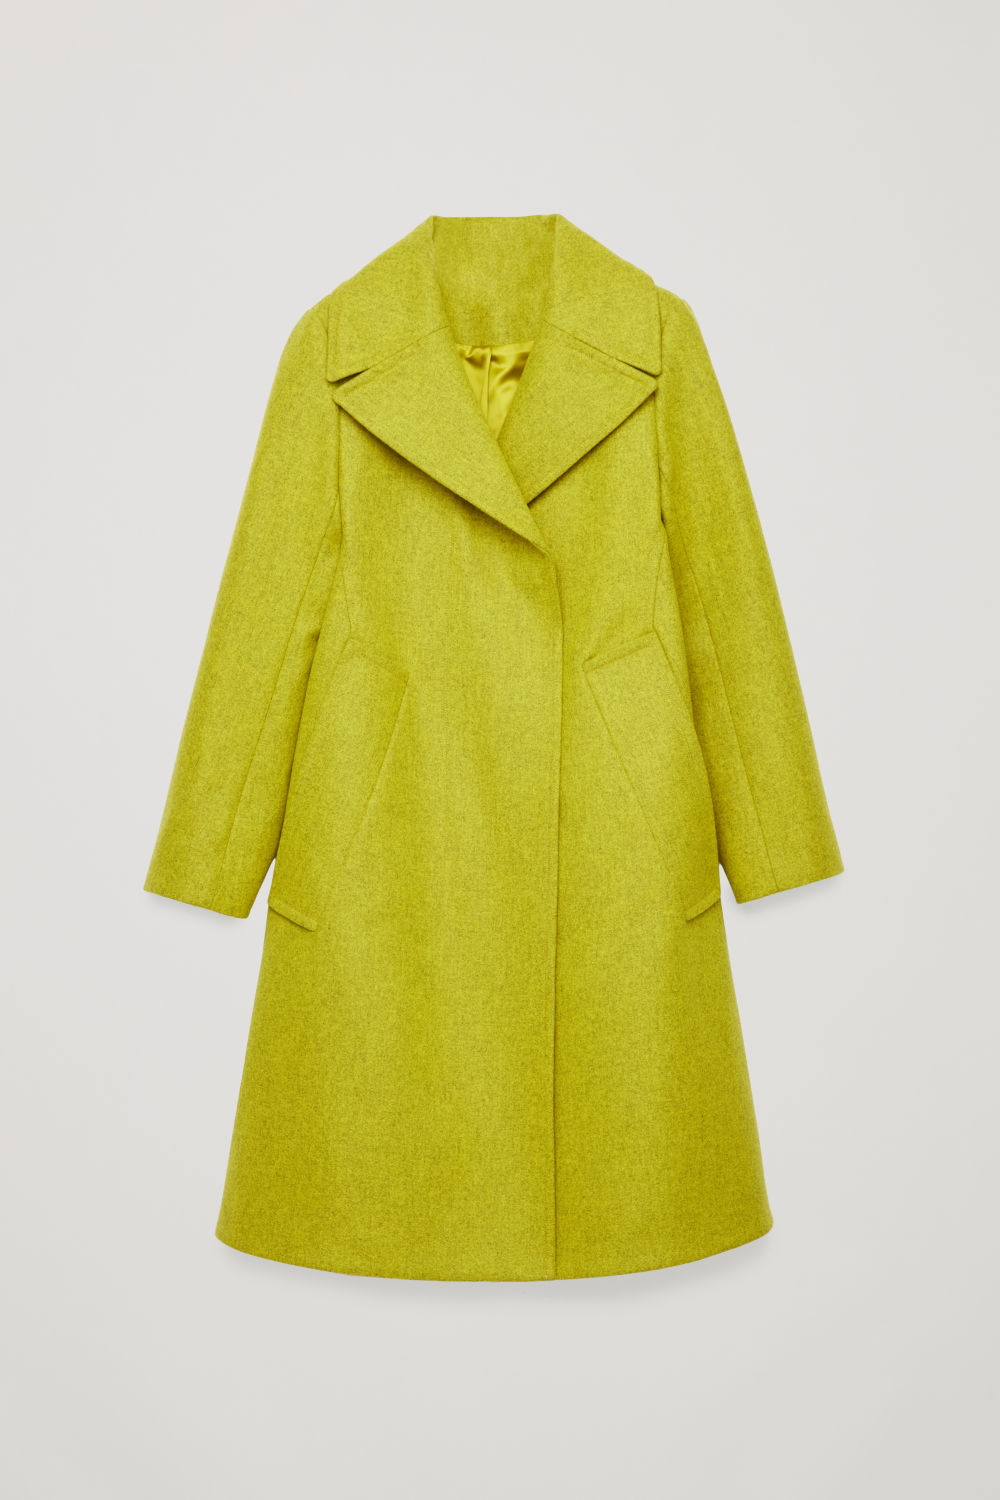 WIDE-COLLARED WOOL COAT